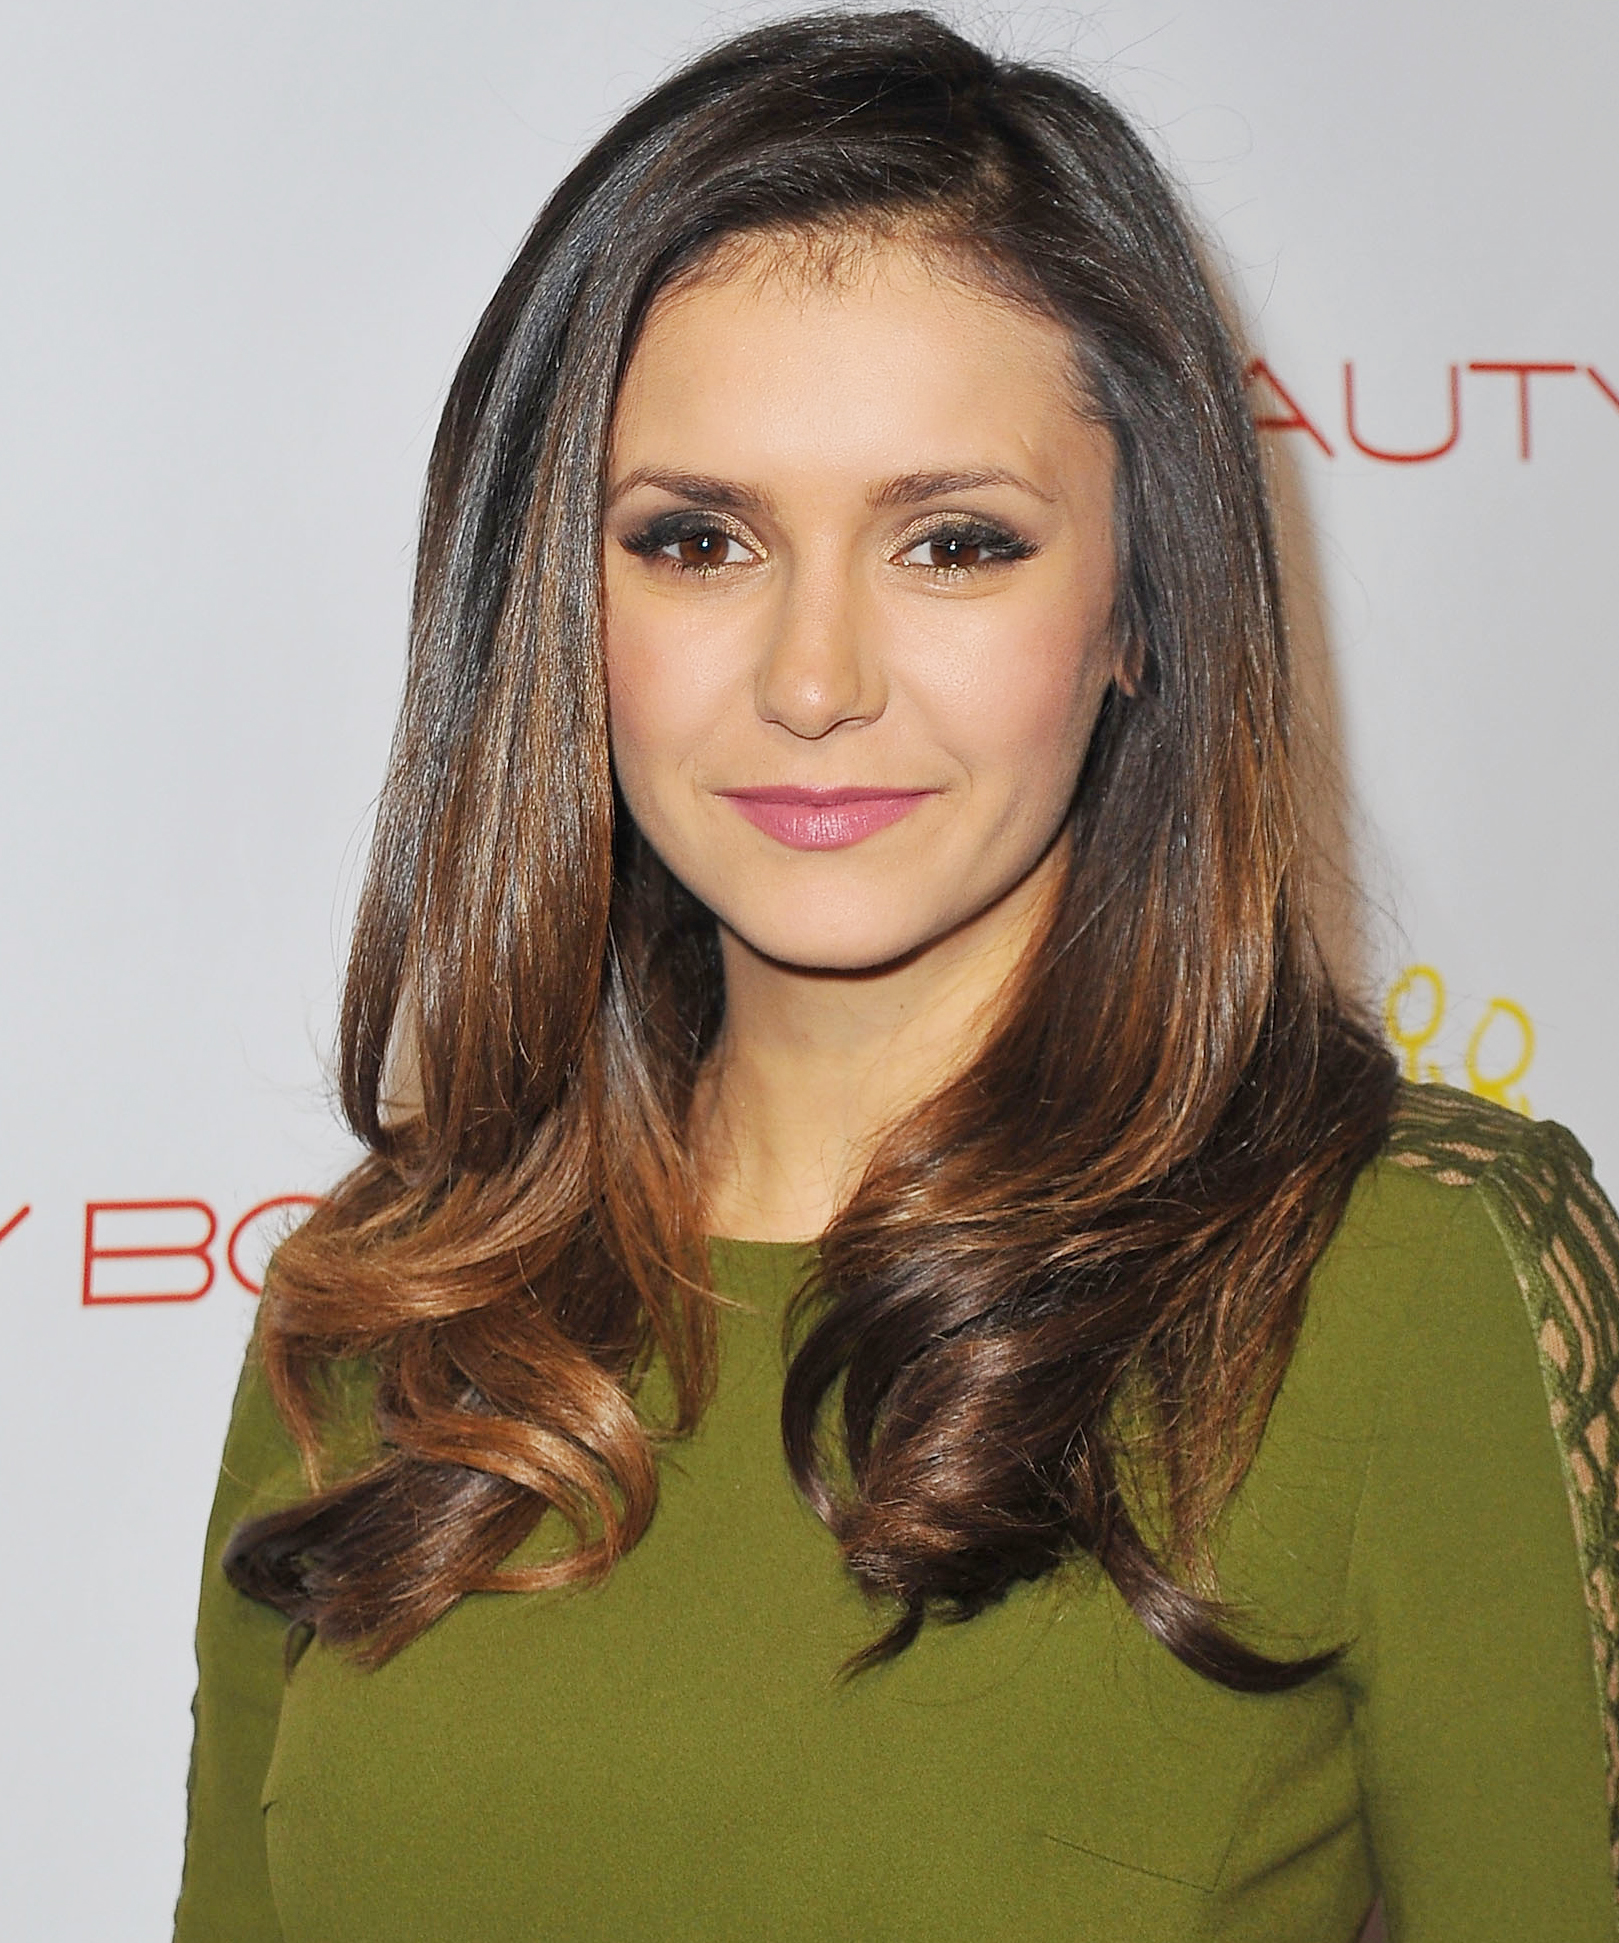 Nina Dobrev Is the Cutest Girl Scout There Ever Was in This Adorable #TBT Photo